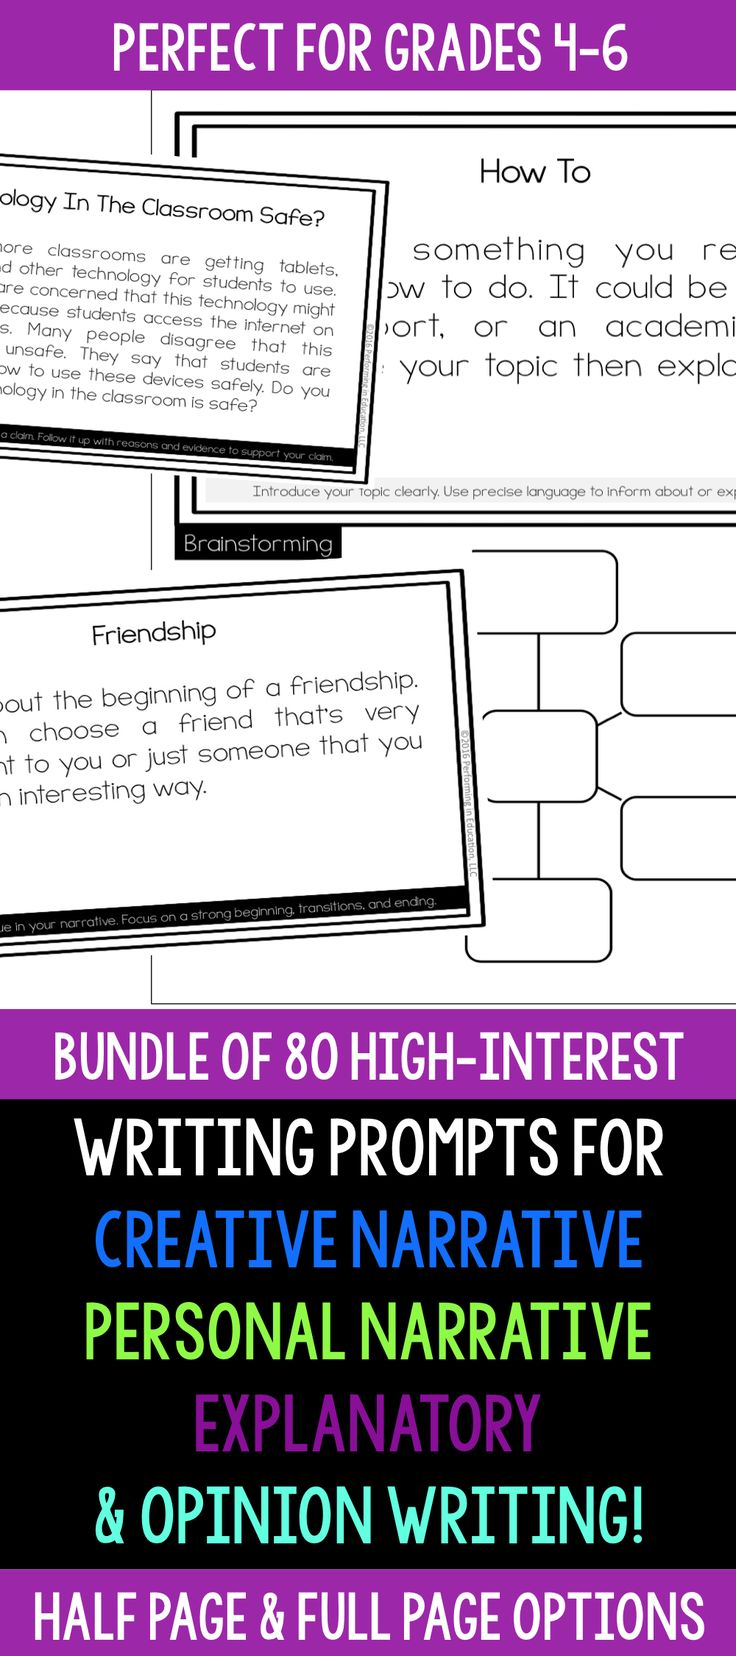 80 awesome writing prompts for creative narrative writing, personal narrative writing, explanatory writing, and opinion writing! Each comes with a full page prompt with brainstorming and half page card options for writing centers!